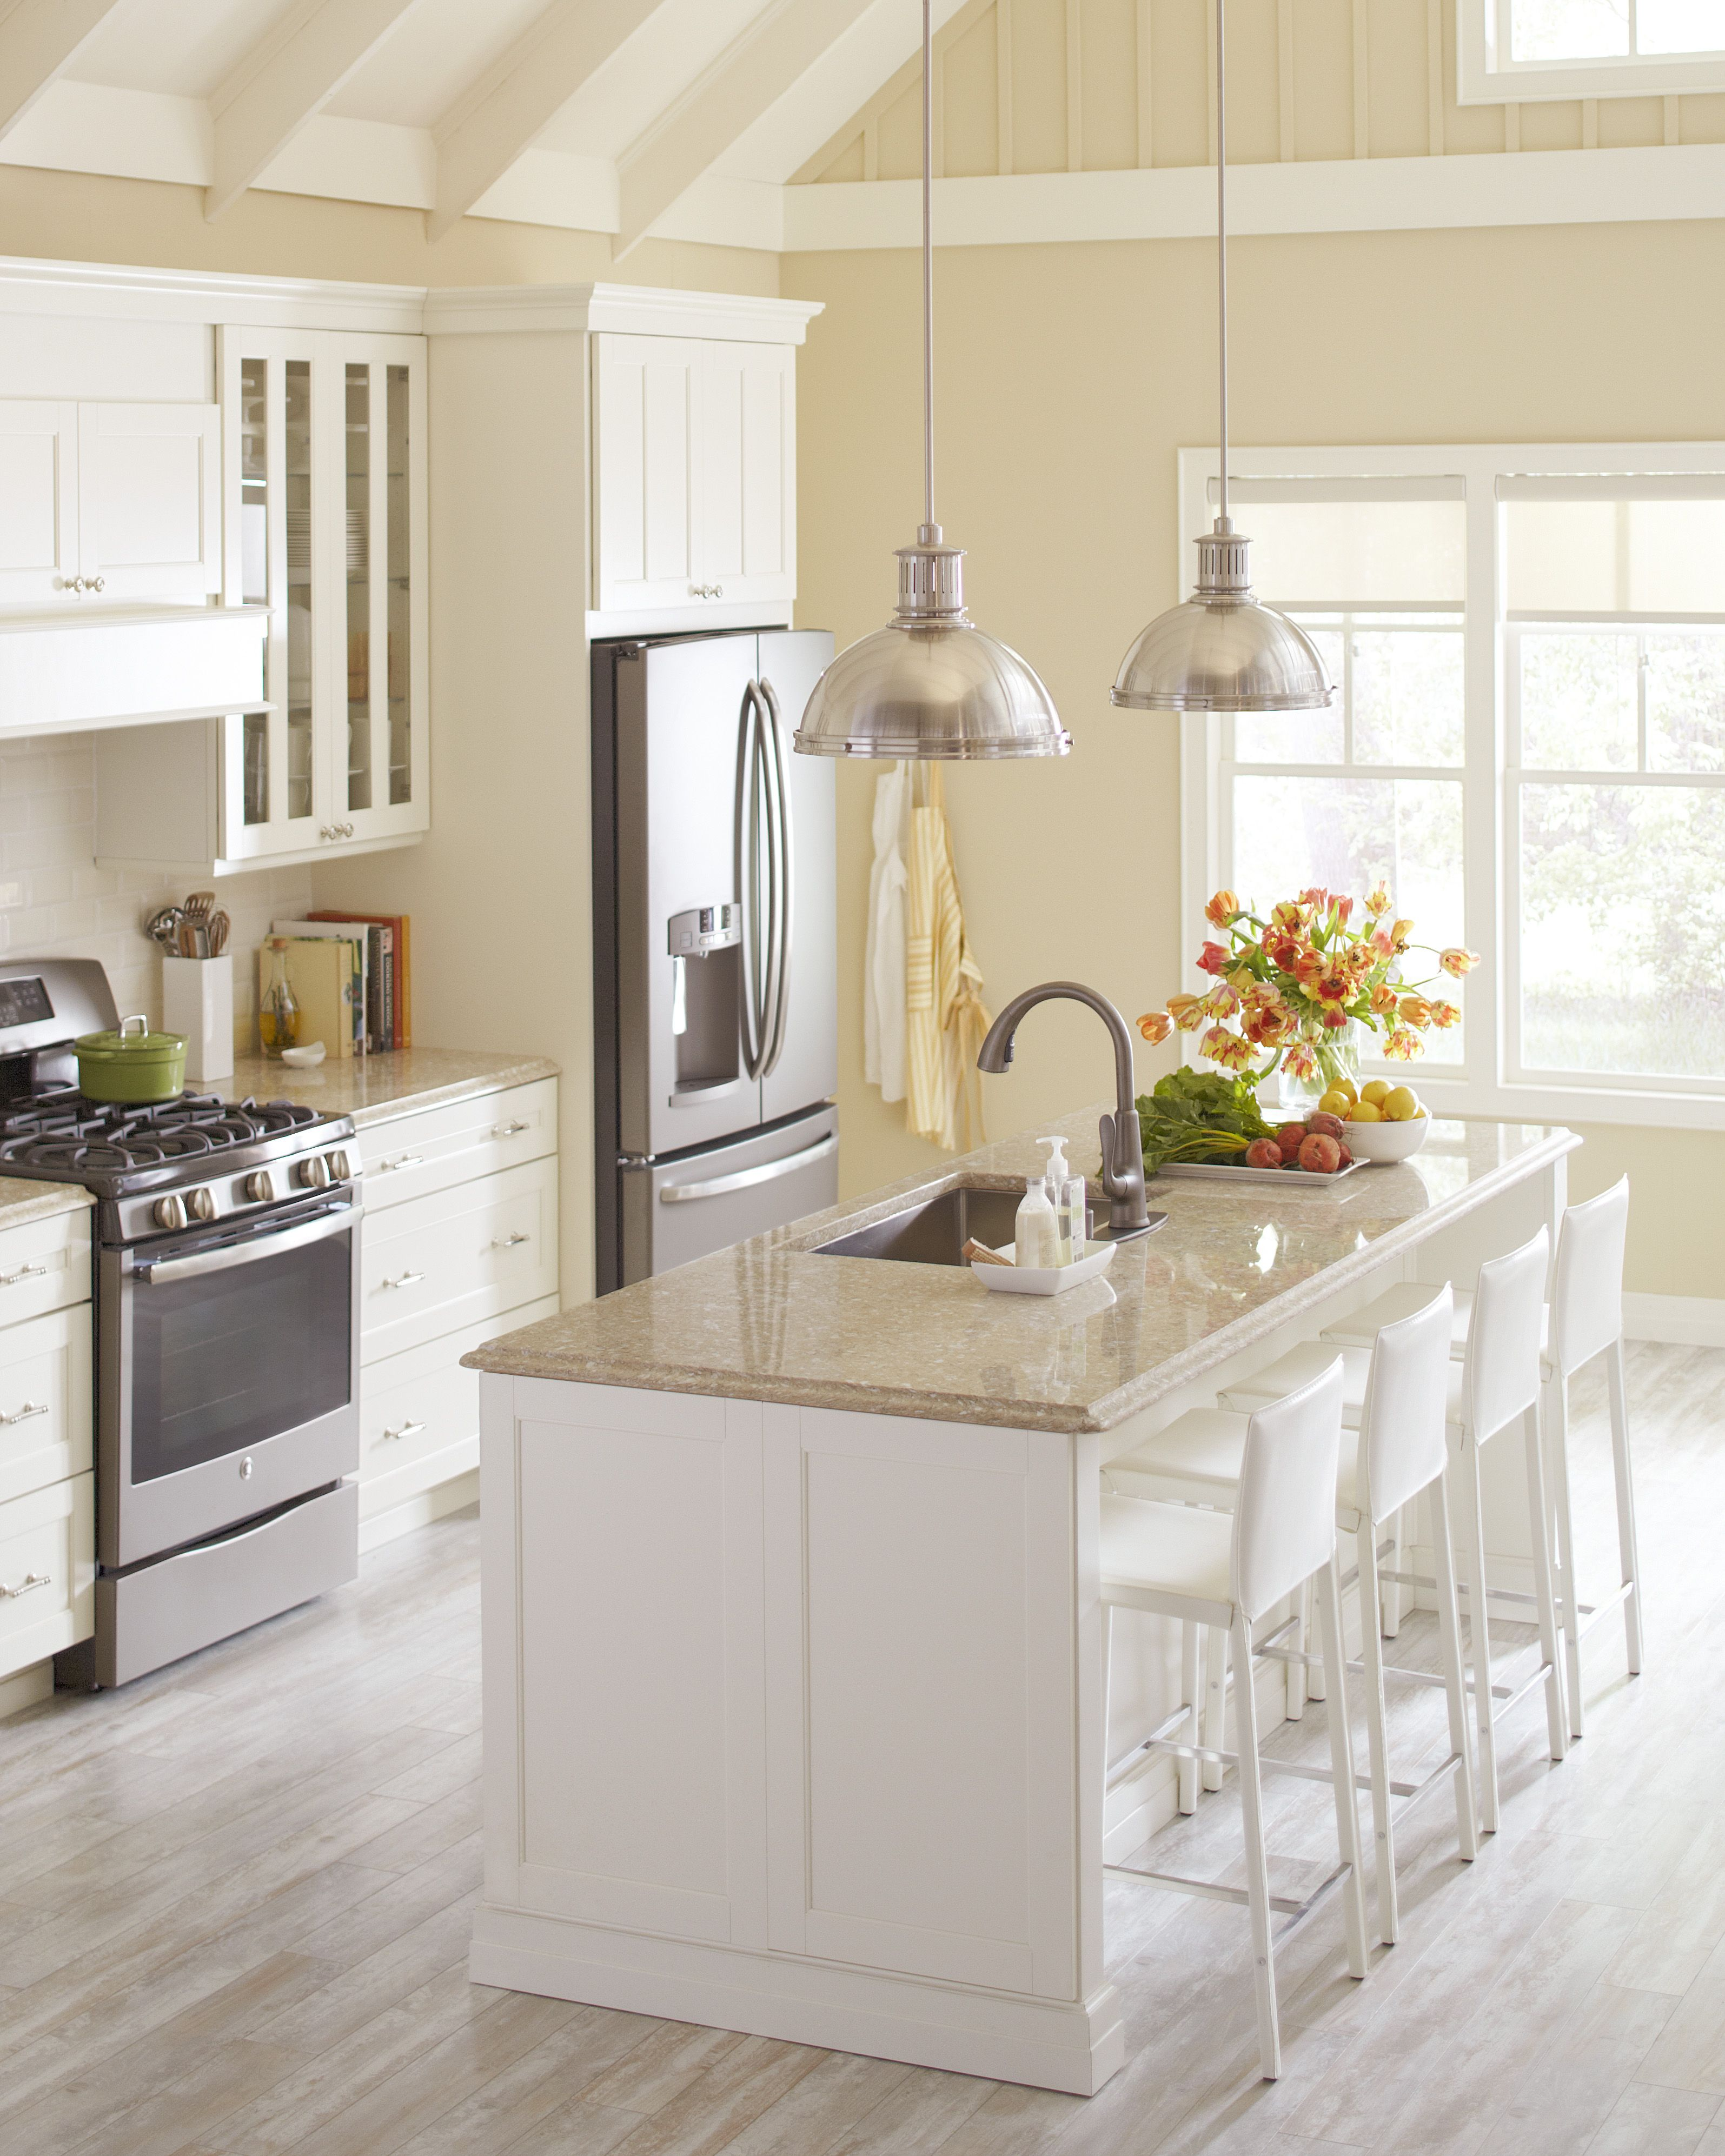 Download Wallpaper White Kitchen Cabinets With White Corian Countertops